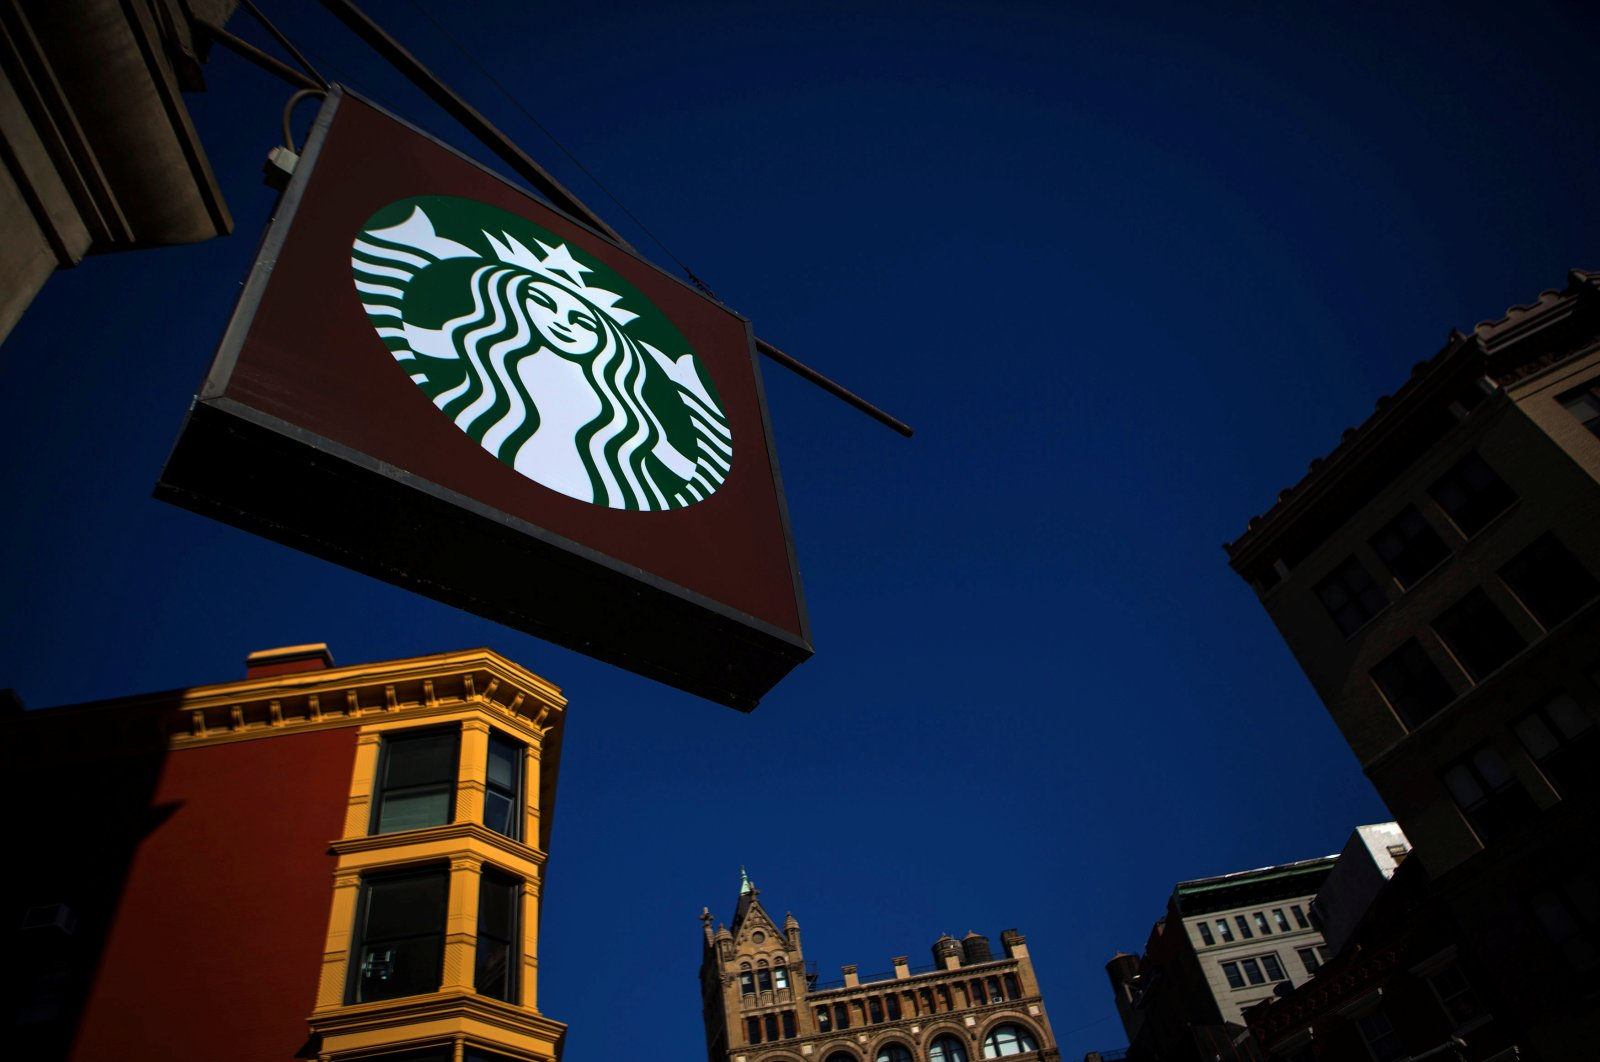 The sign of a Starbucks store is seen in New York, the U.S., Jan. 24, 2014. (Reuters Photo)